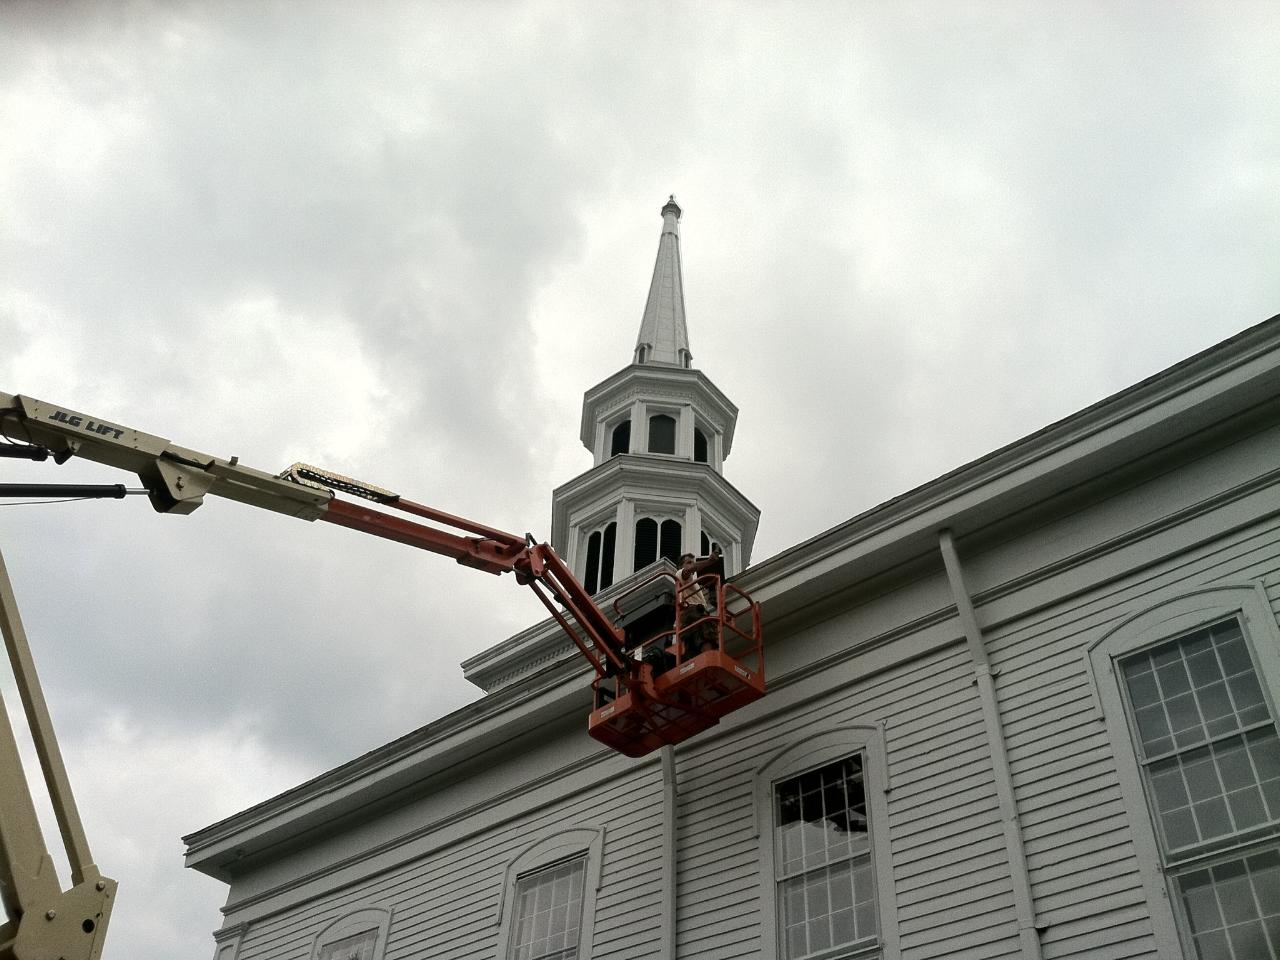 Lighting the Hilltop Church Steeple » Mendham Electric